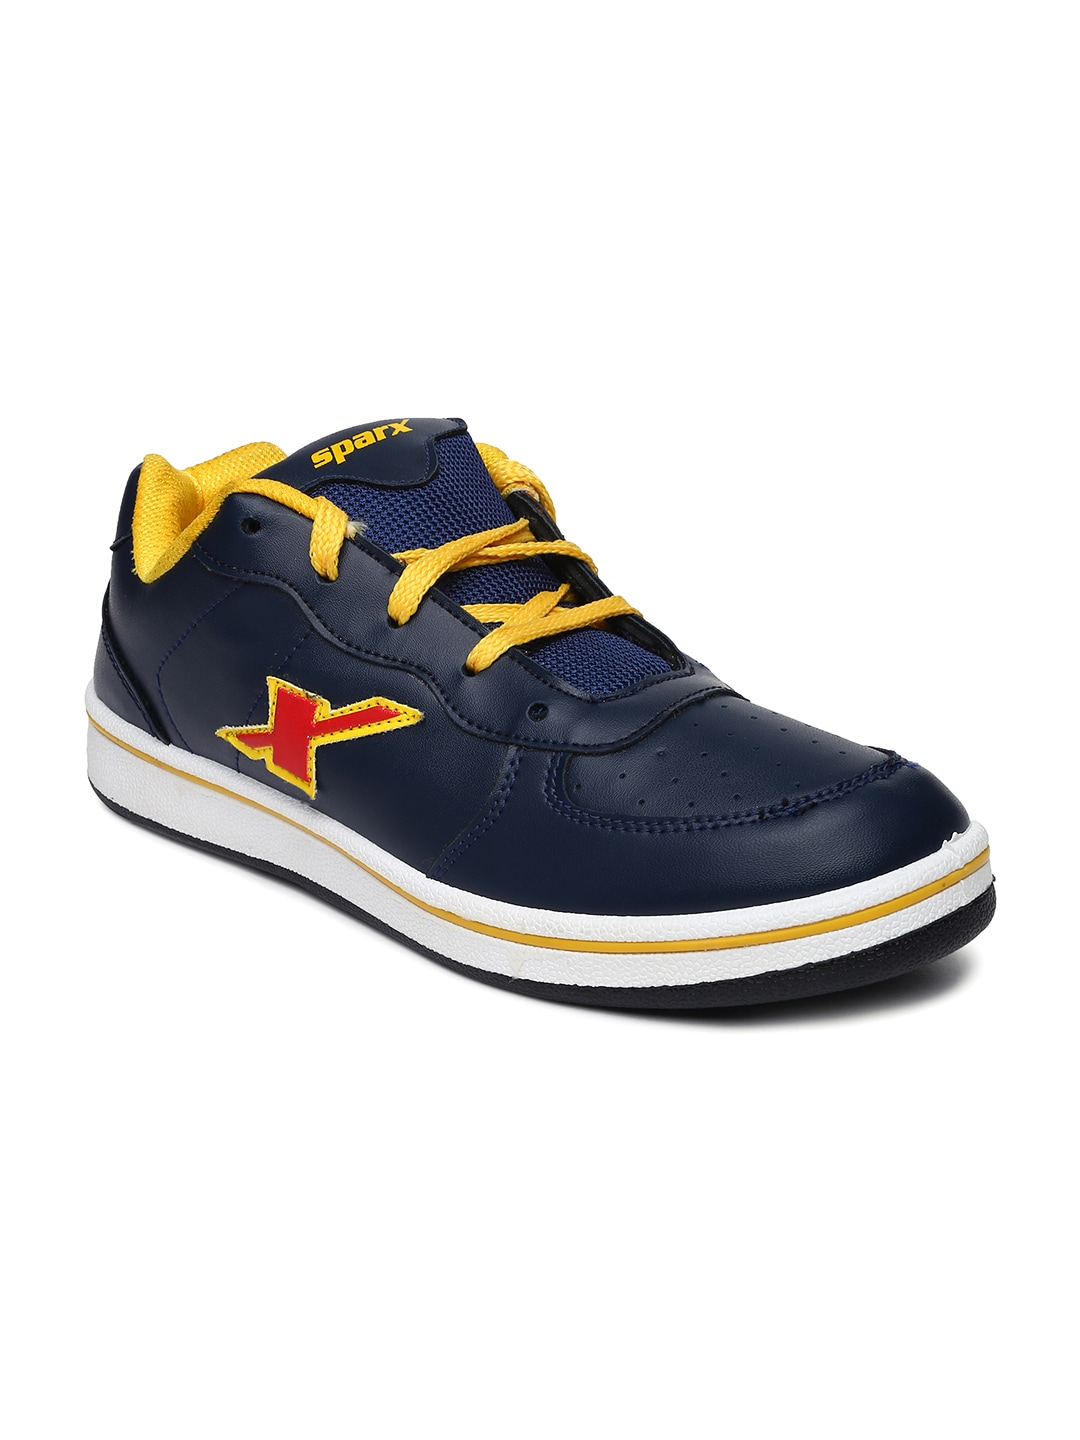 f34b8da76c7880 Sparx Shoes - Buy Sparx Shoes for Men Online in India